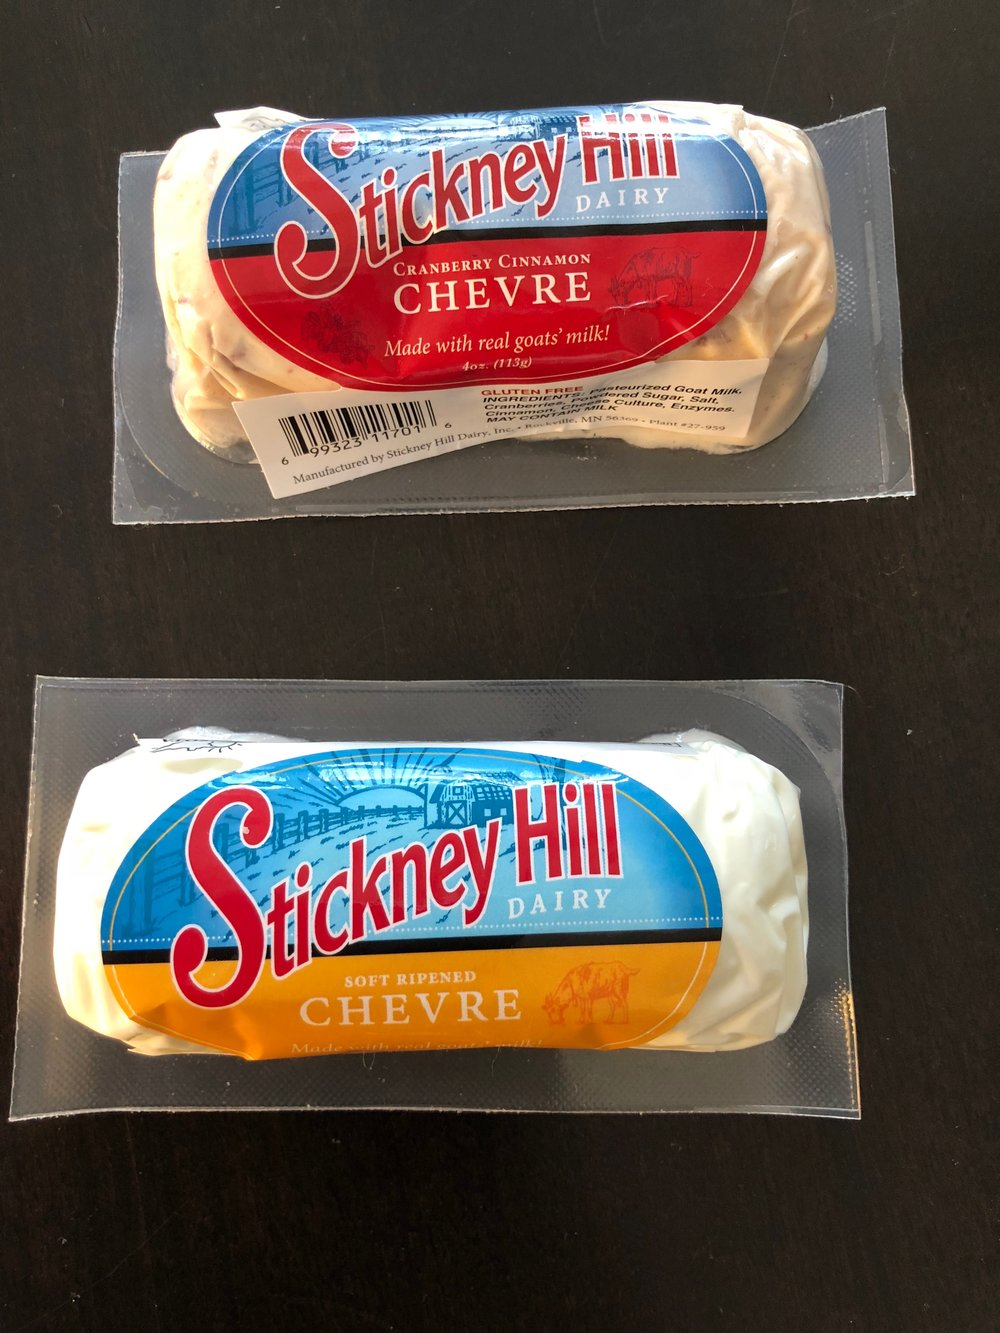 As of now, Stickney Hill is not available nation-wide but I have a little inside connection so I know it may be called something else in other states and will be available everywhere - hopefully soon. I will let you know as soon as I know. My daughter can eat one of these tubes in one sitting.